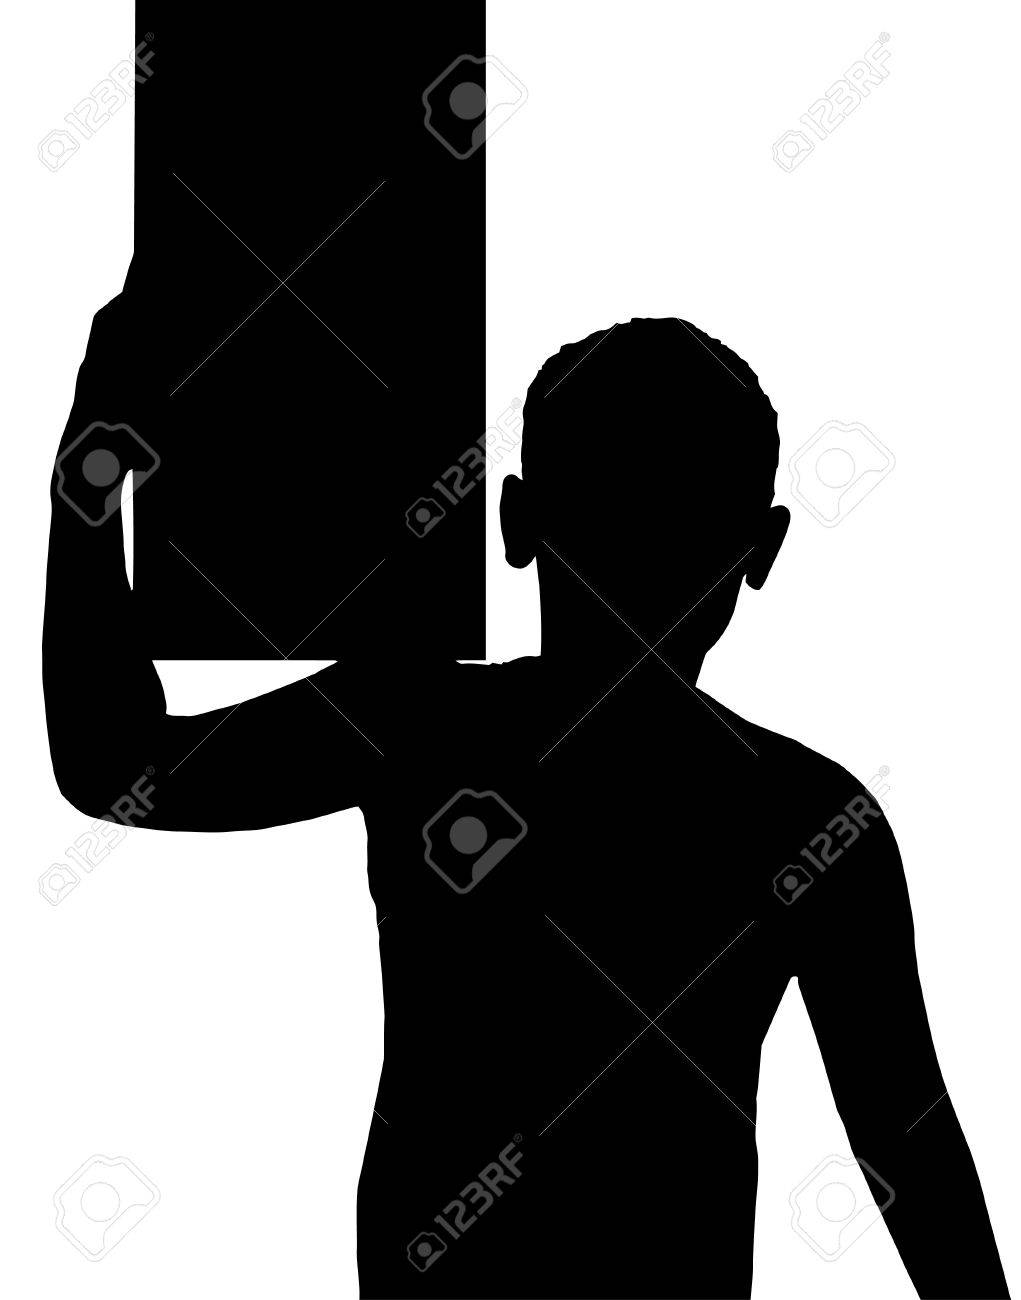 Isolated Silhouetted Boy Child Gesture and Activity Carrying Box on Shoulder Stock Vector - 9779612